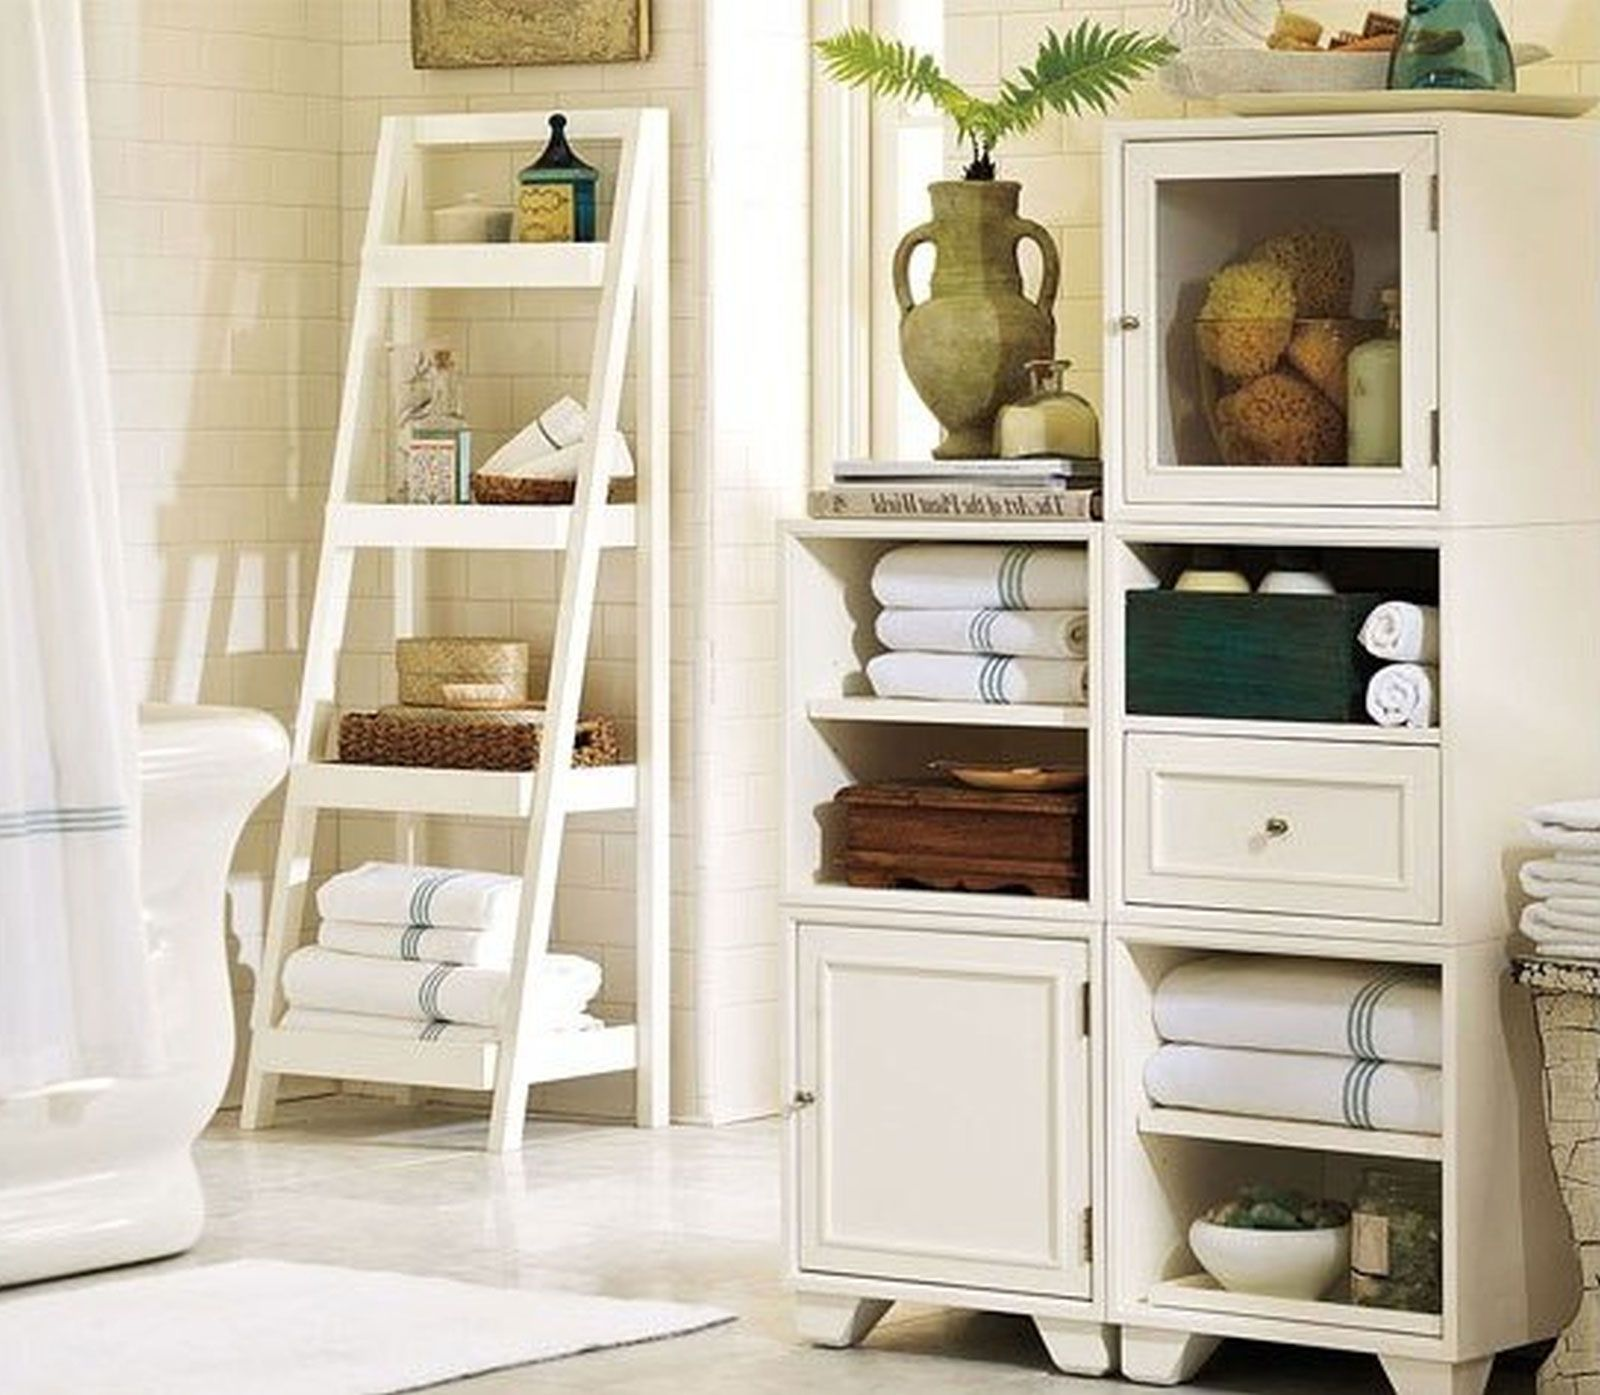 Exquisite Bathroom Storage Furniture Ideas For Completing Your Bathroom Interior Design